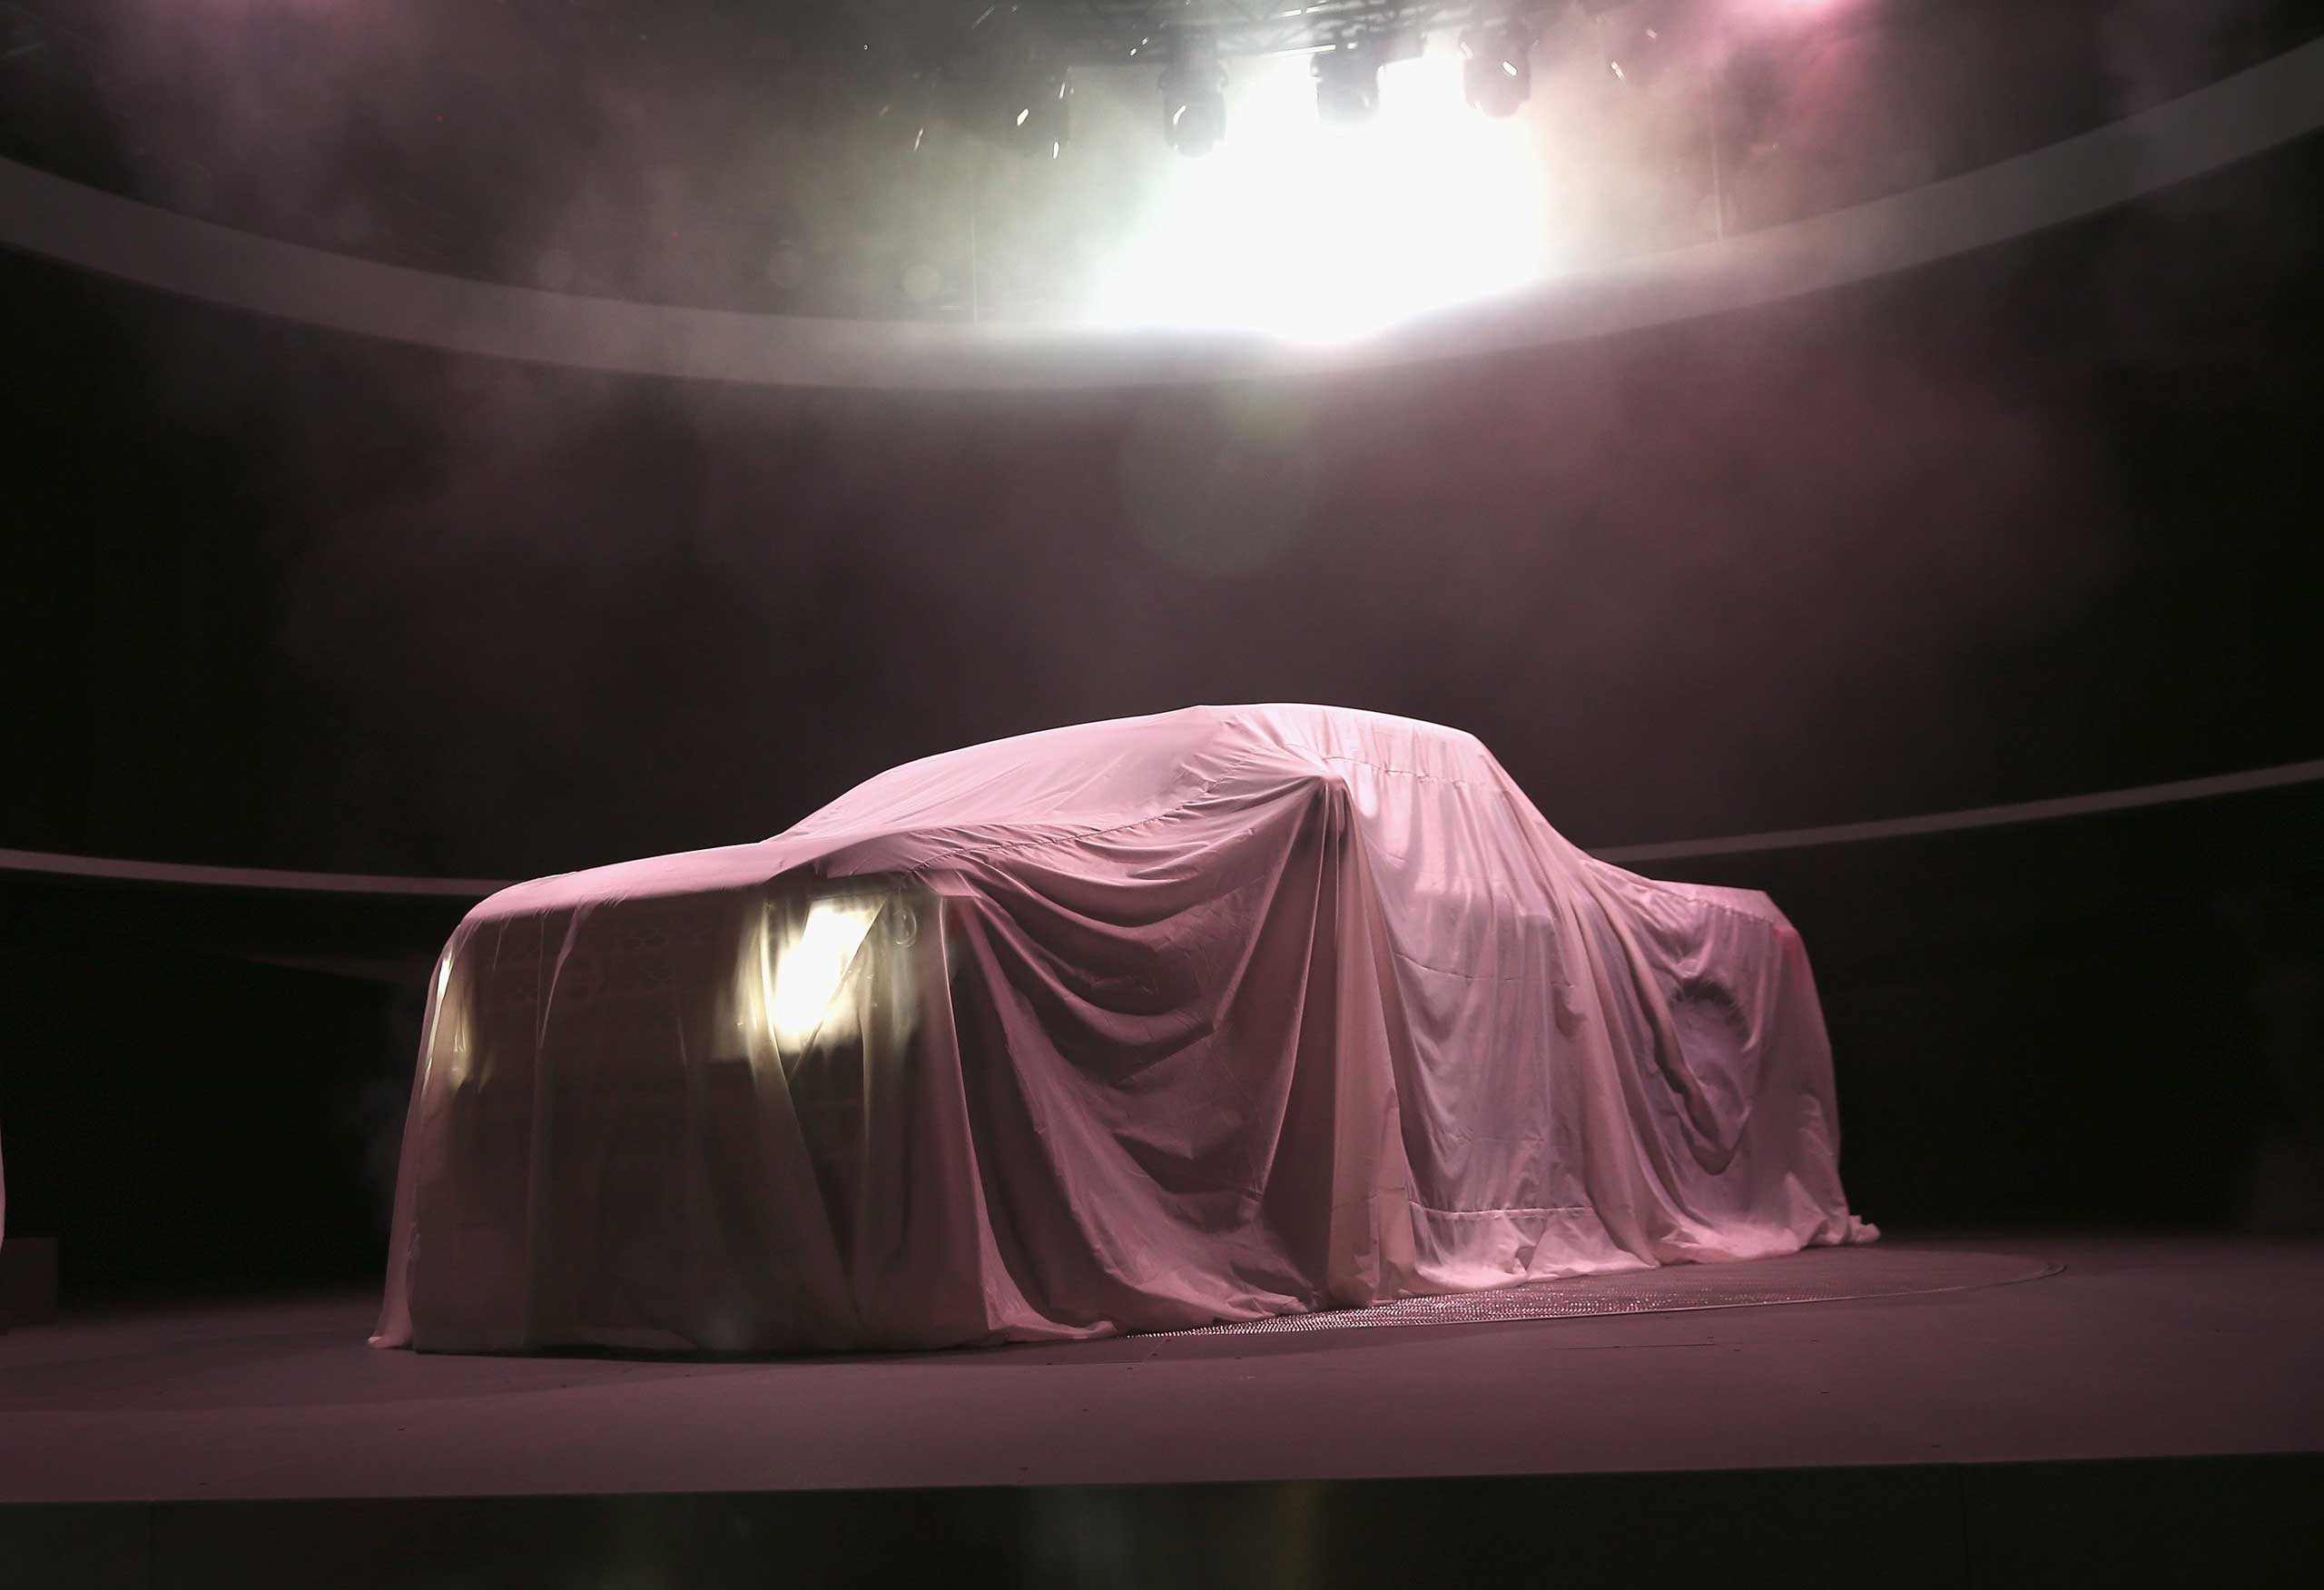 Jan. 12, 2015. Nissan prepares to introduce the new Titan pickup truck at the North American International Auto Show (NAIAS) in Detroit, Mich.